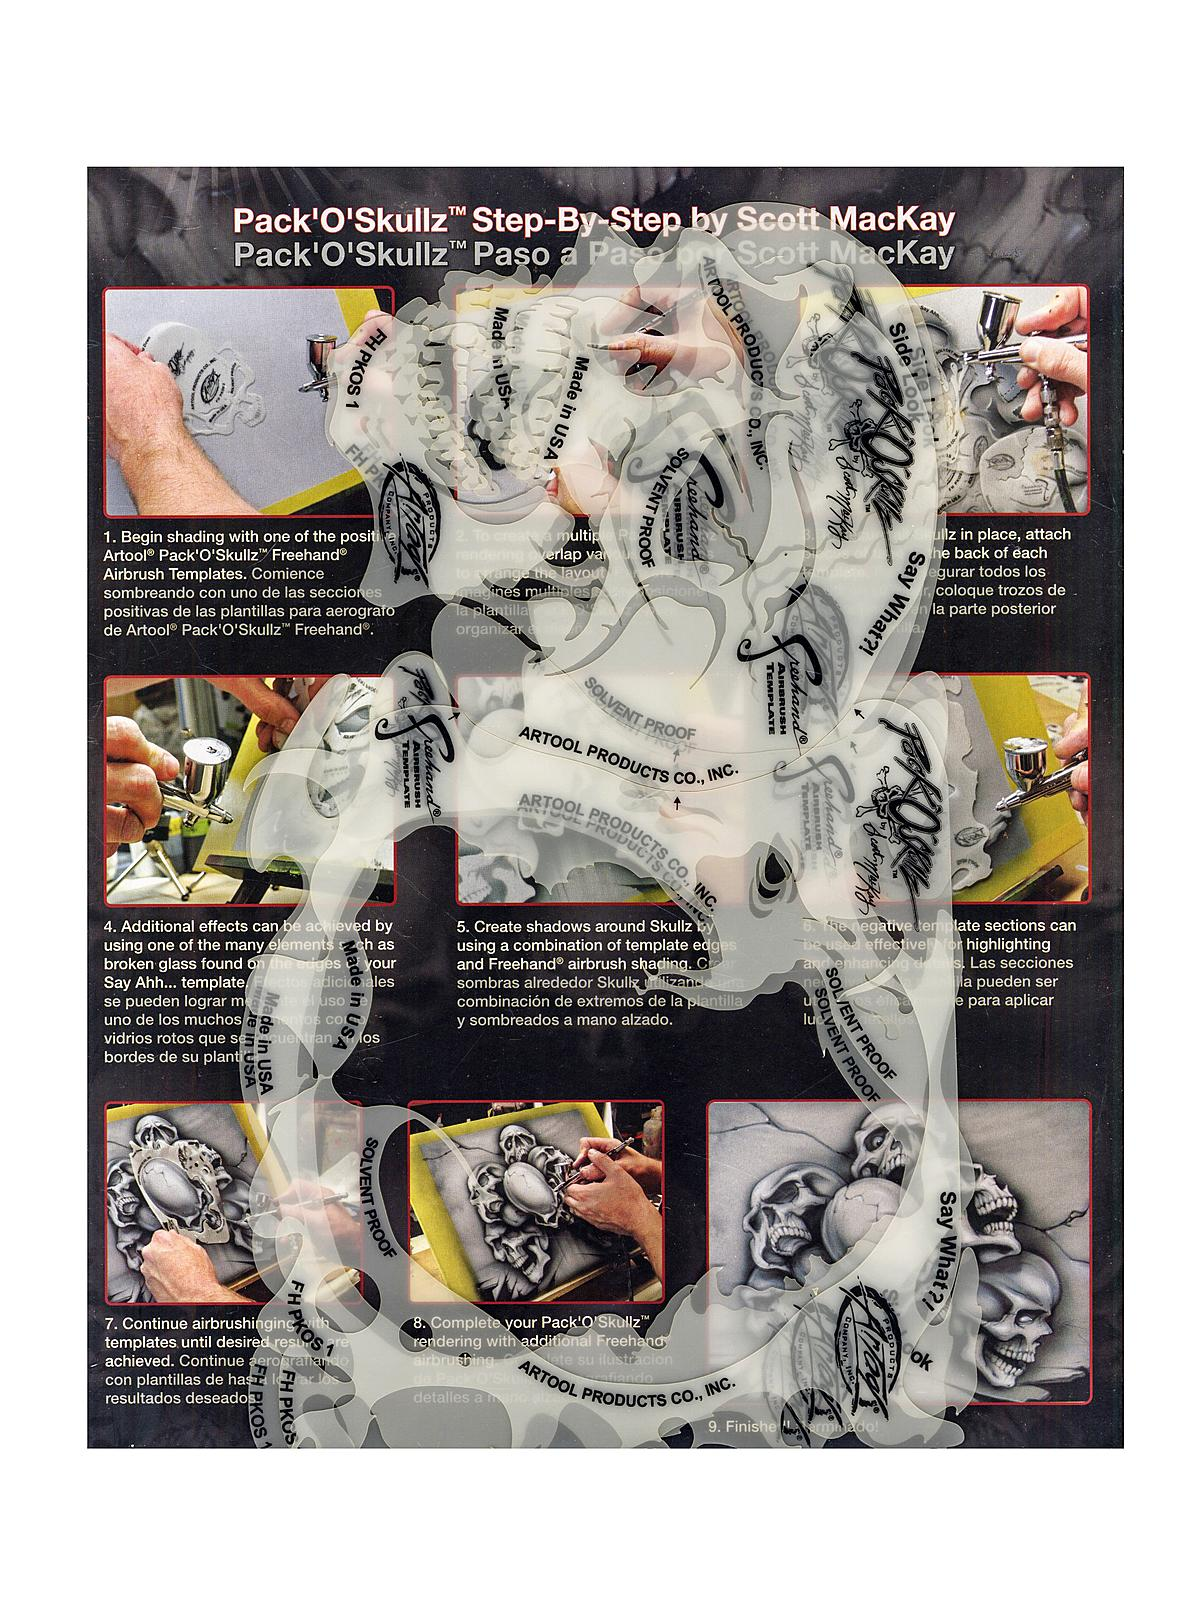 Pack of Skulls Freehand Airbrush Templates